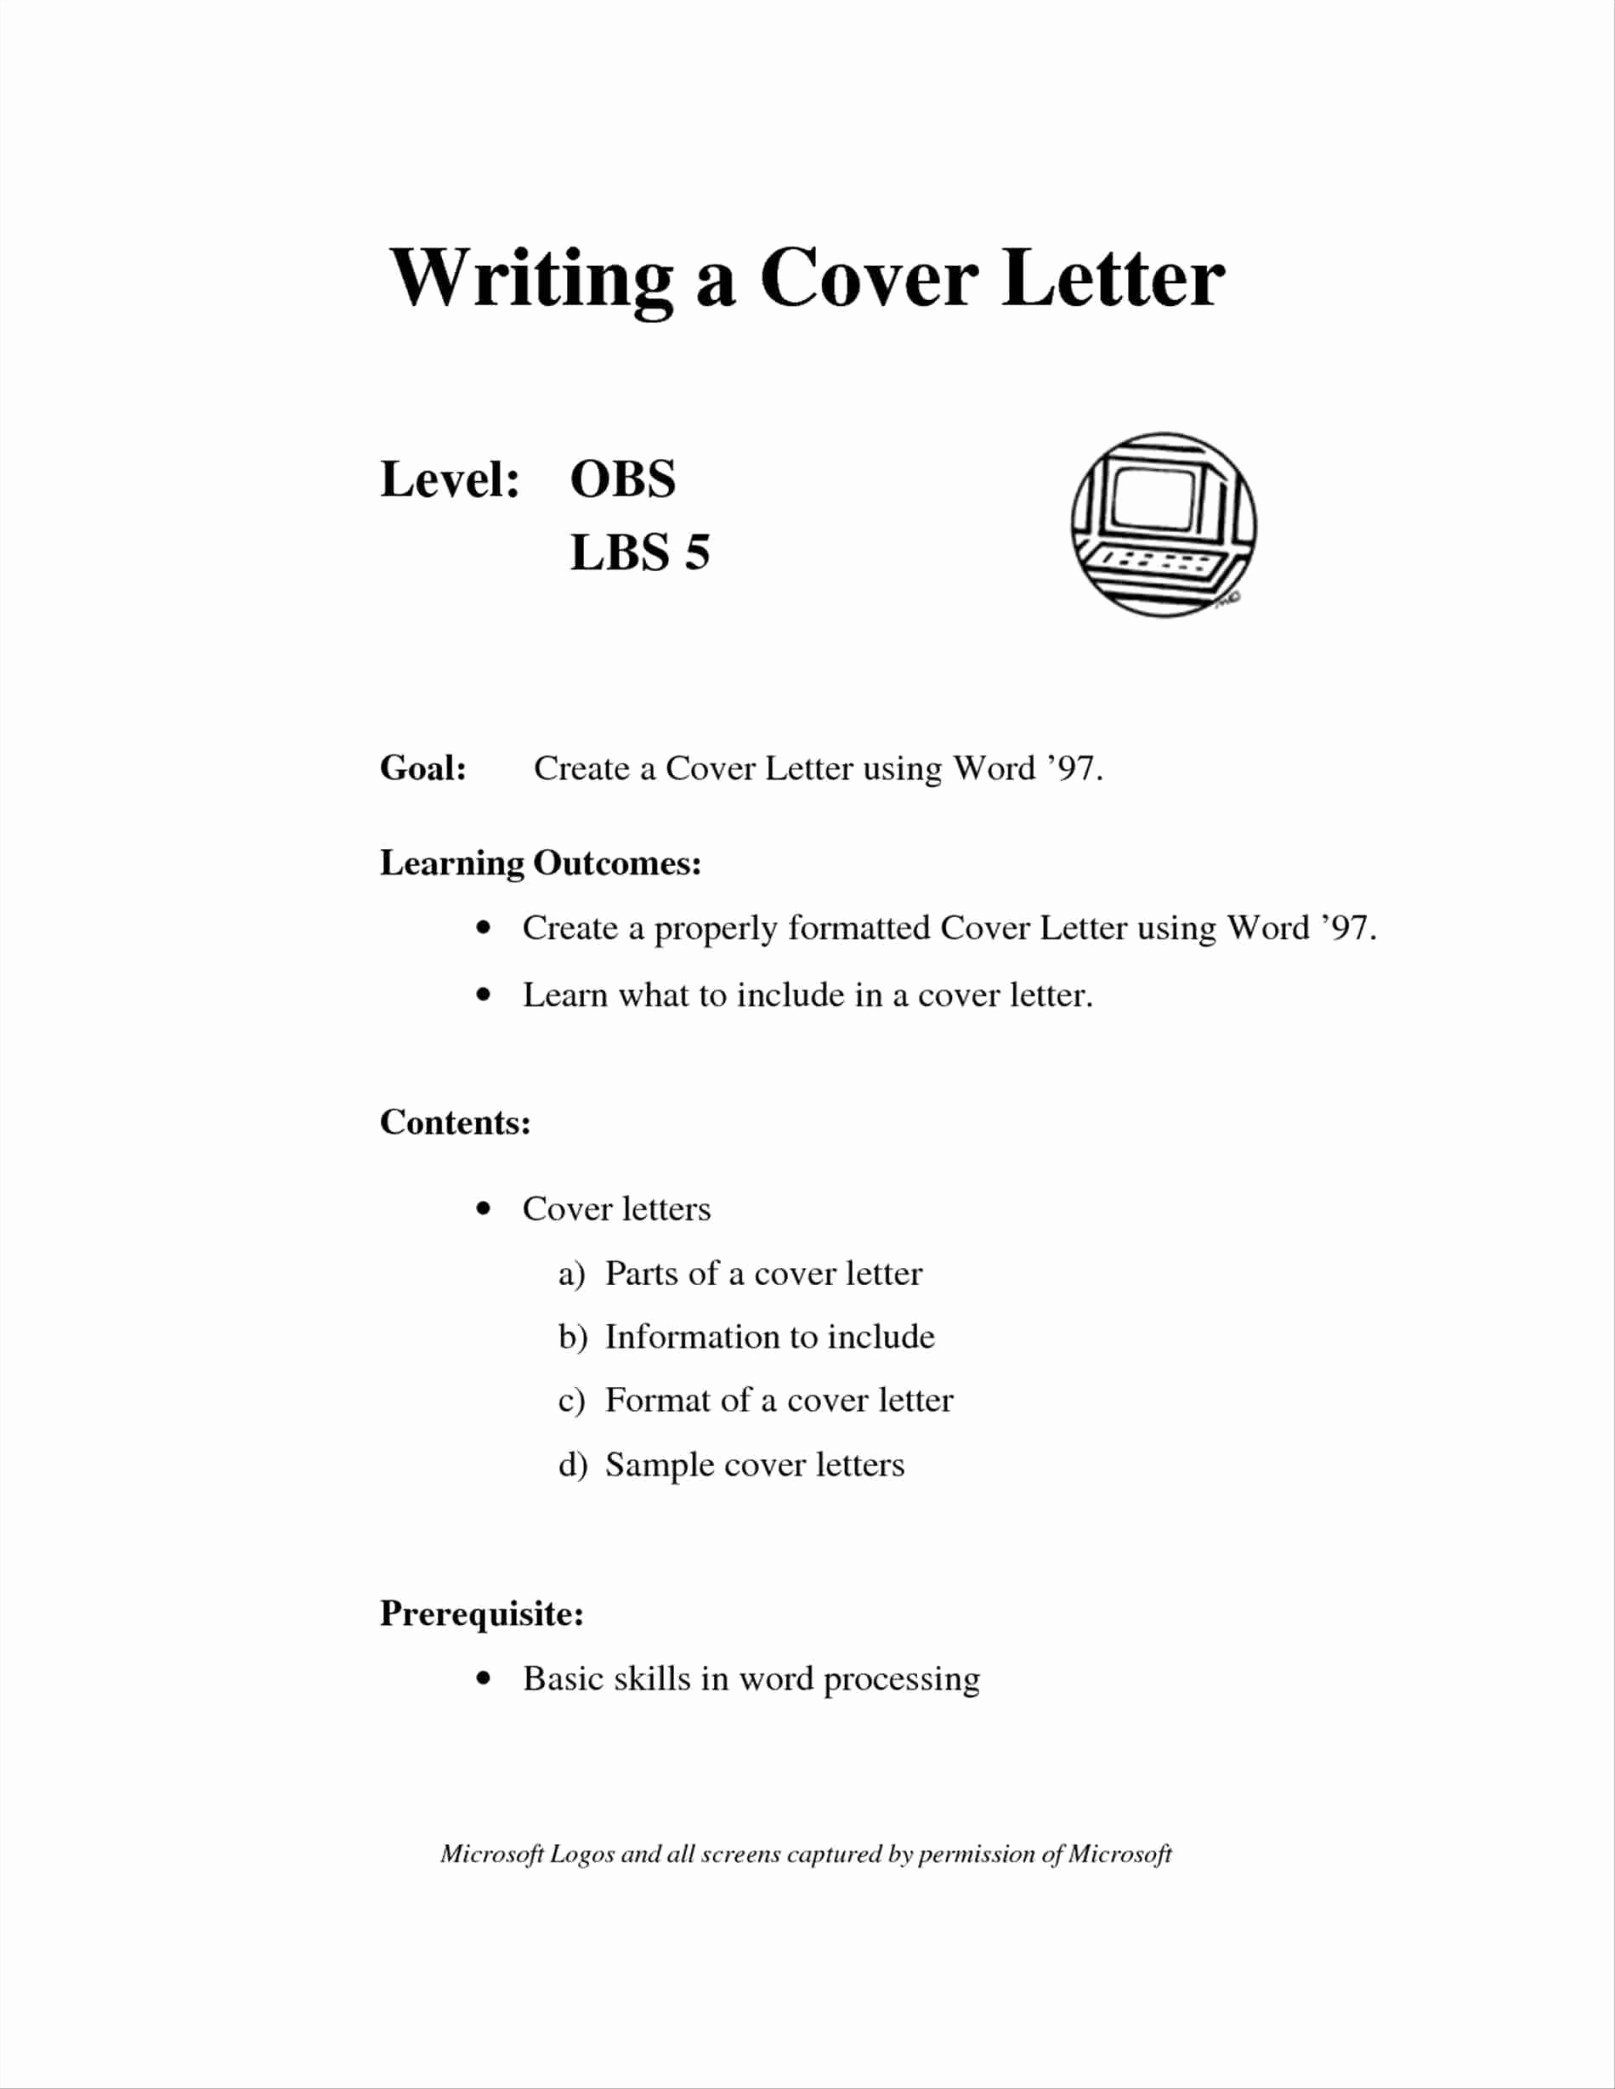 Free Boss 039 S Day Ecards Inspirational Cover Letter Do S And Don Ts 2016 Fresh Children In 2020 Writing A Cover Letter Cover Letter For Resume What Is Cover Letter